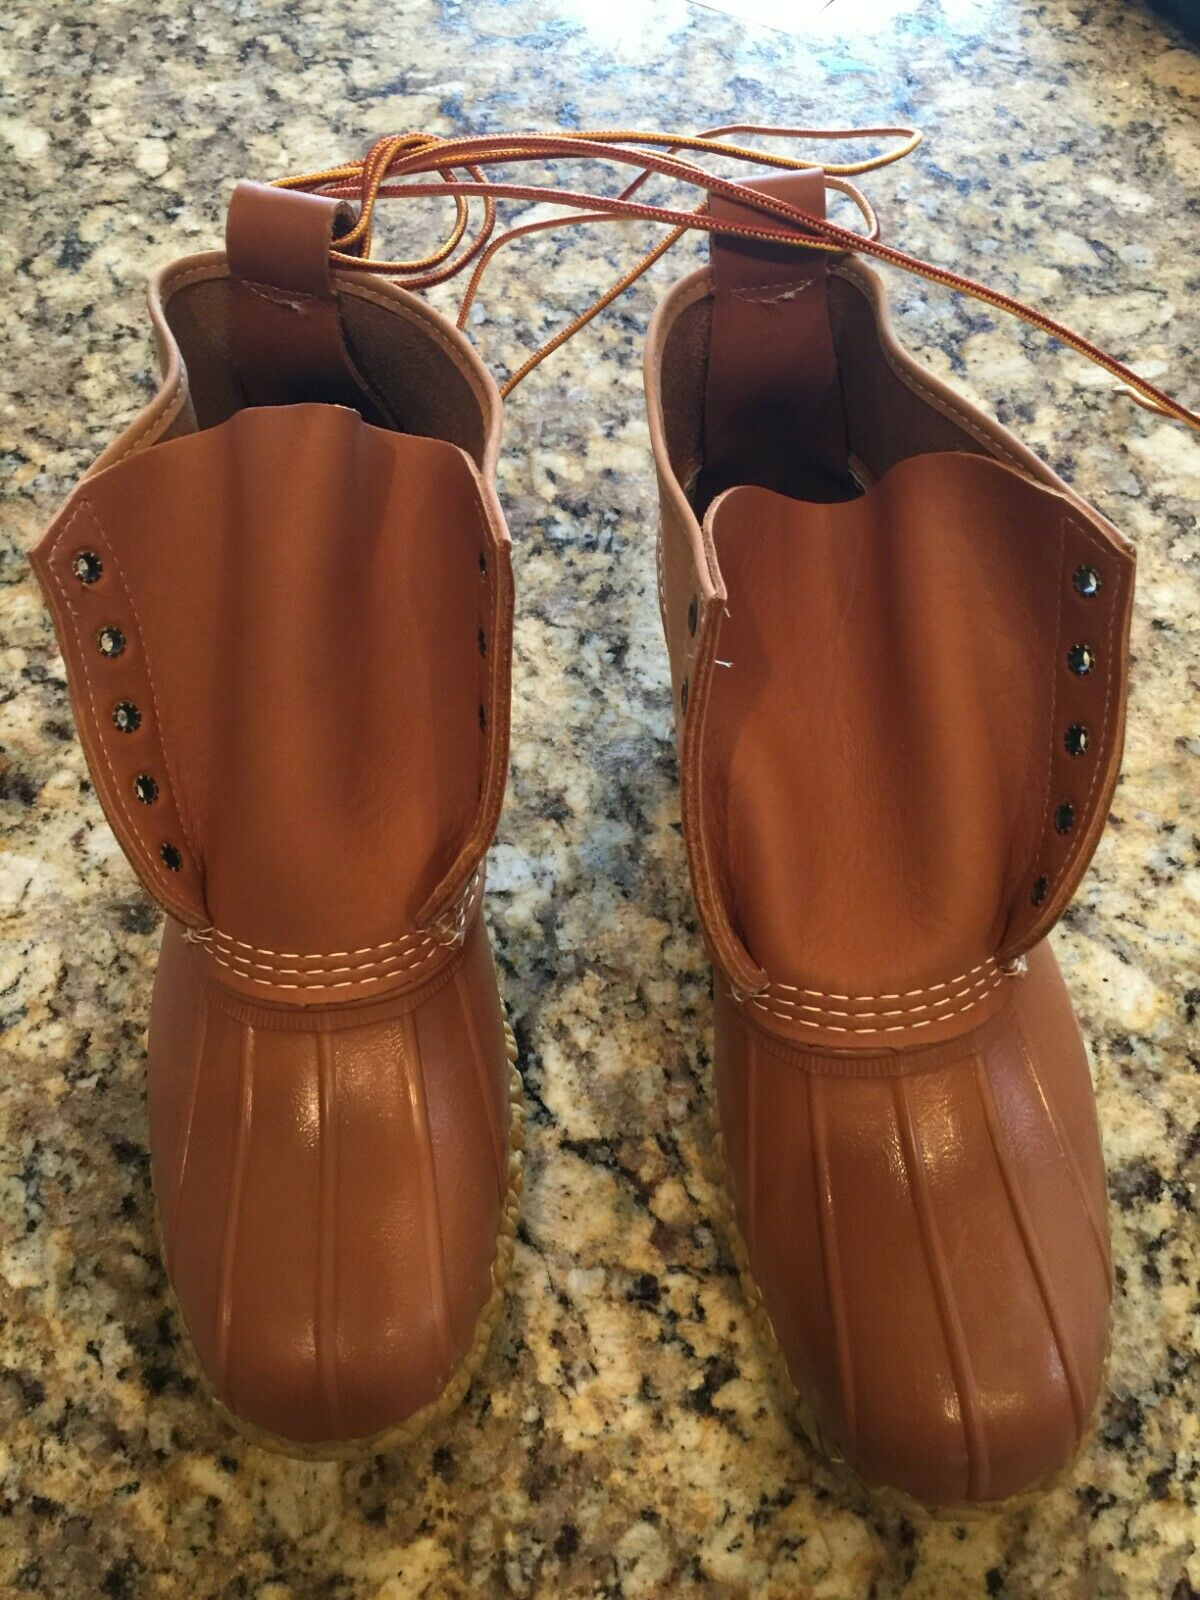 Brand New- Limited Edition  LL Bean Boots, Small Batch men's.  Size 11